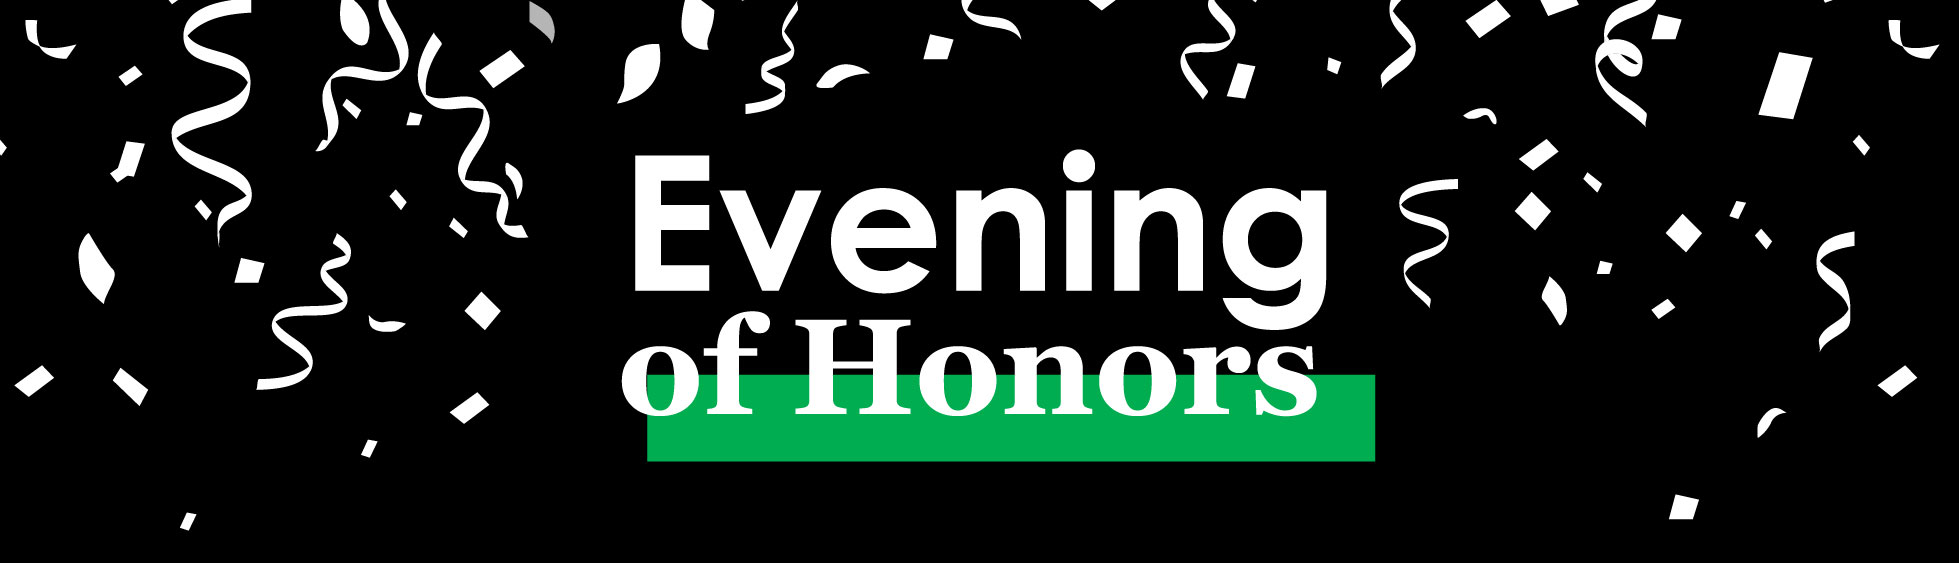 2020 Evening of Honors Highlights: